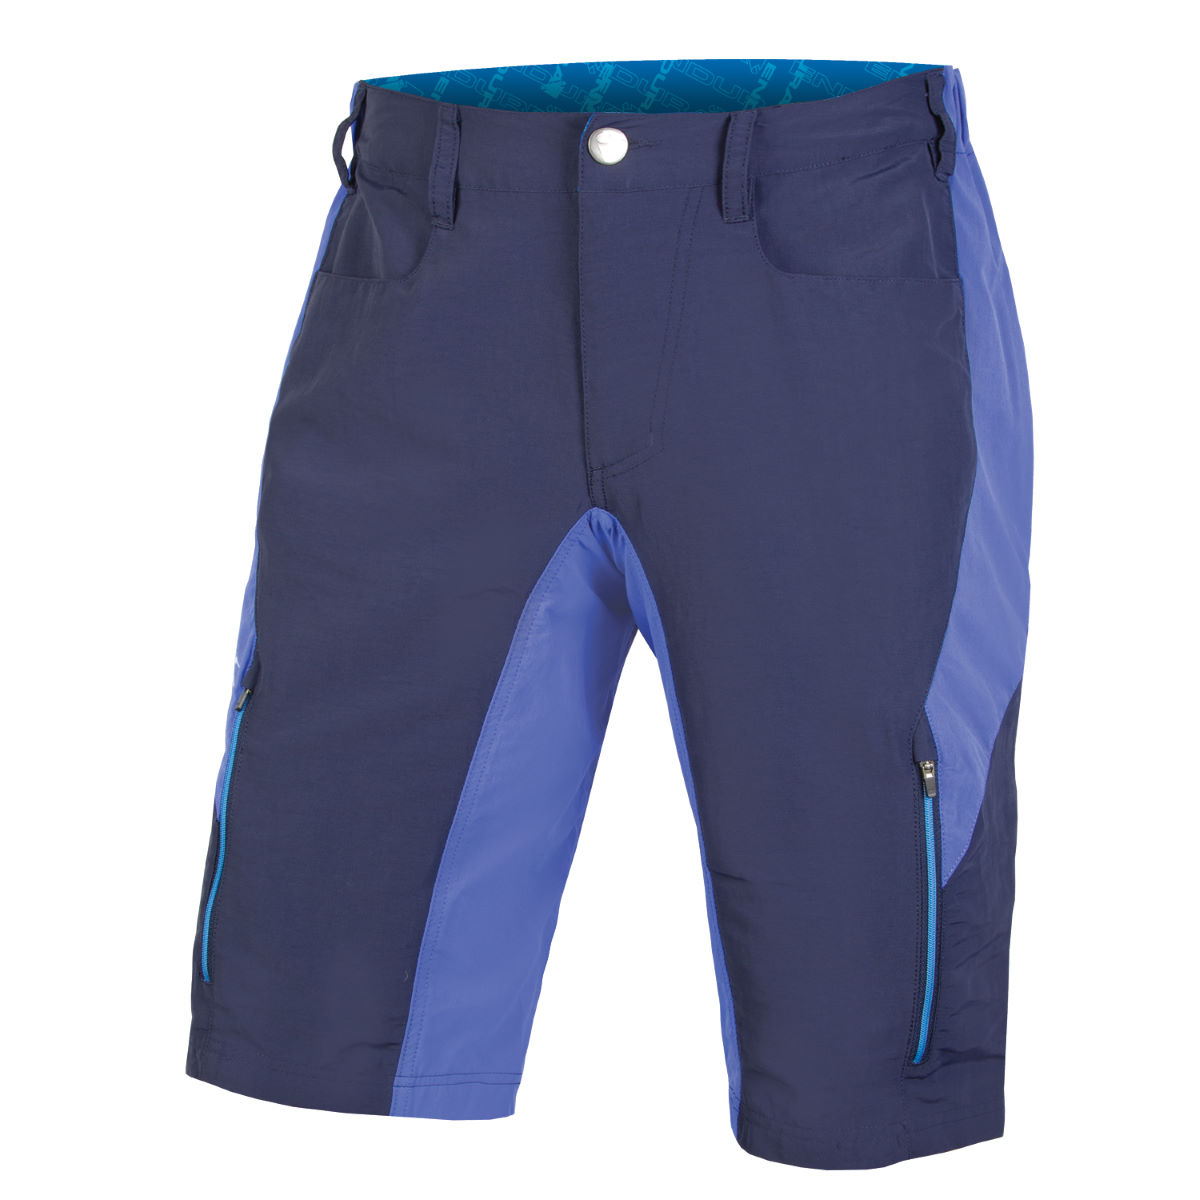 Short Endura SingleTrack III - Medium Bleu marine Shorts VTT